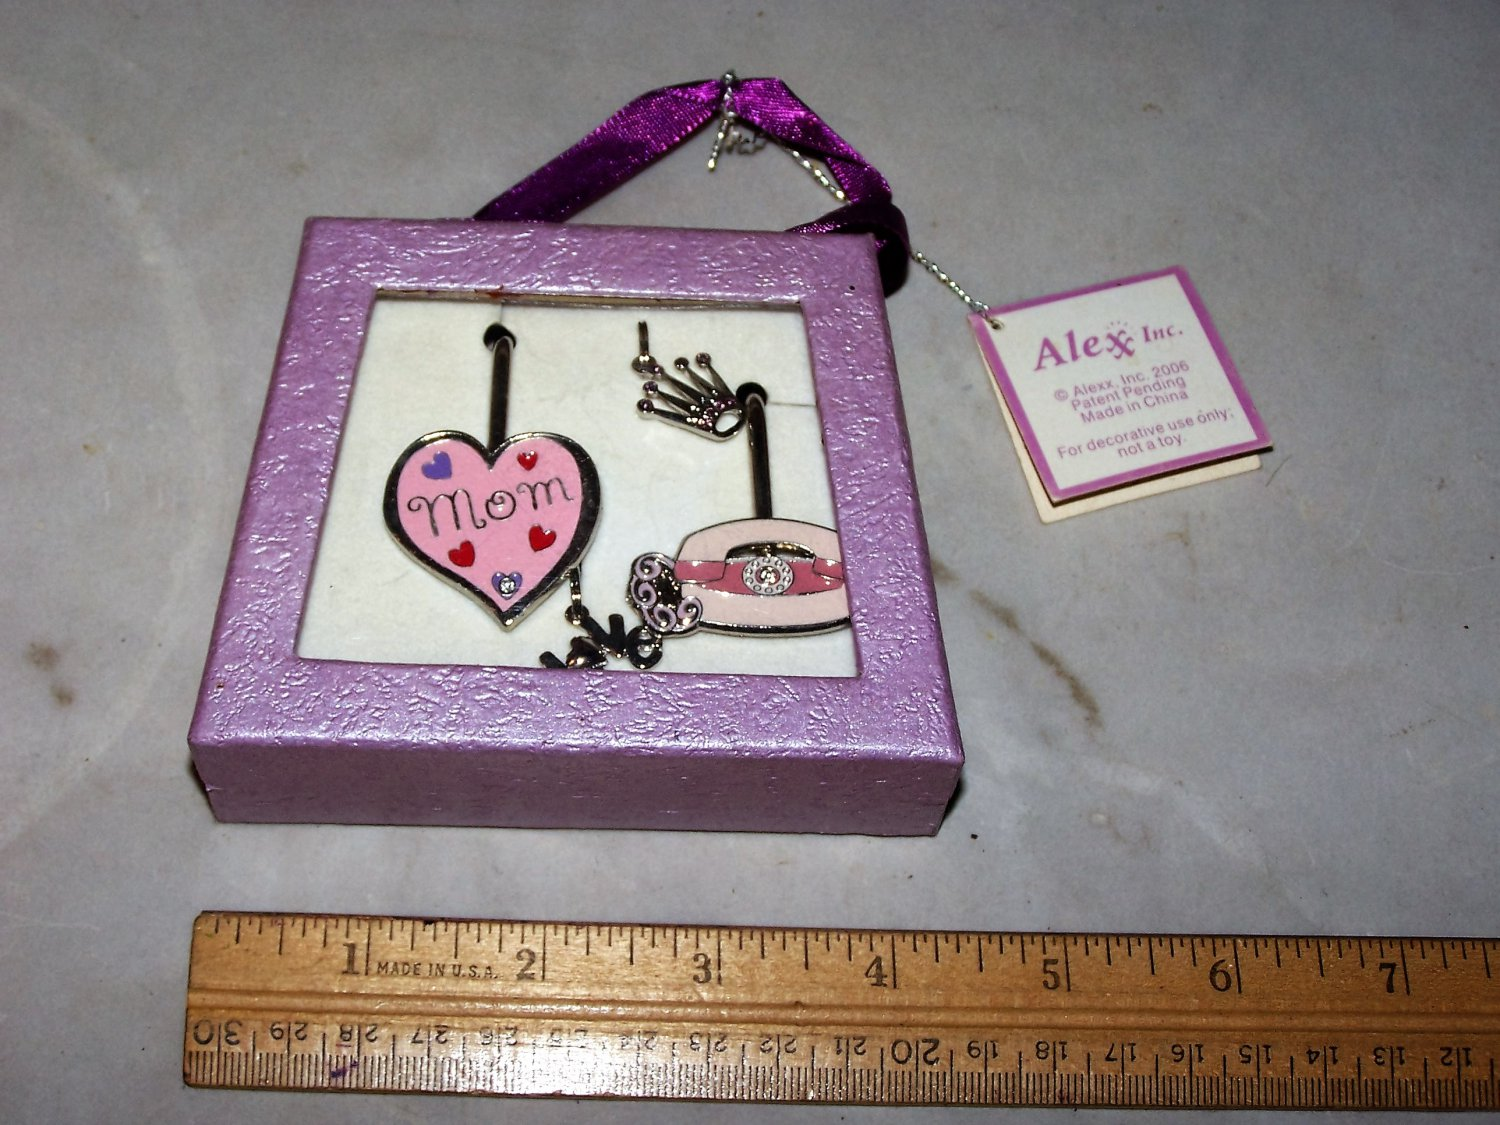 mom finders key purse charms set nib alex inc nib